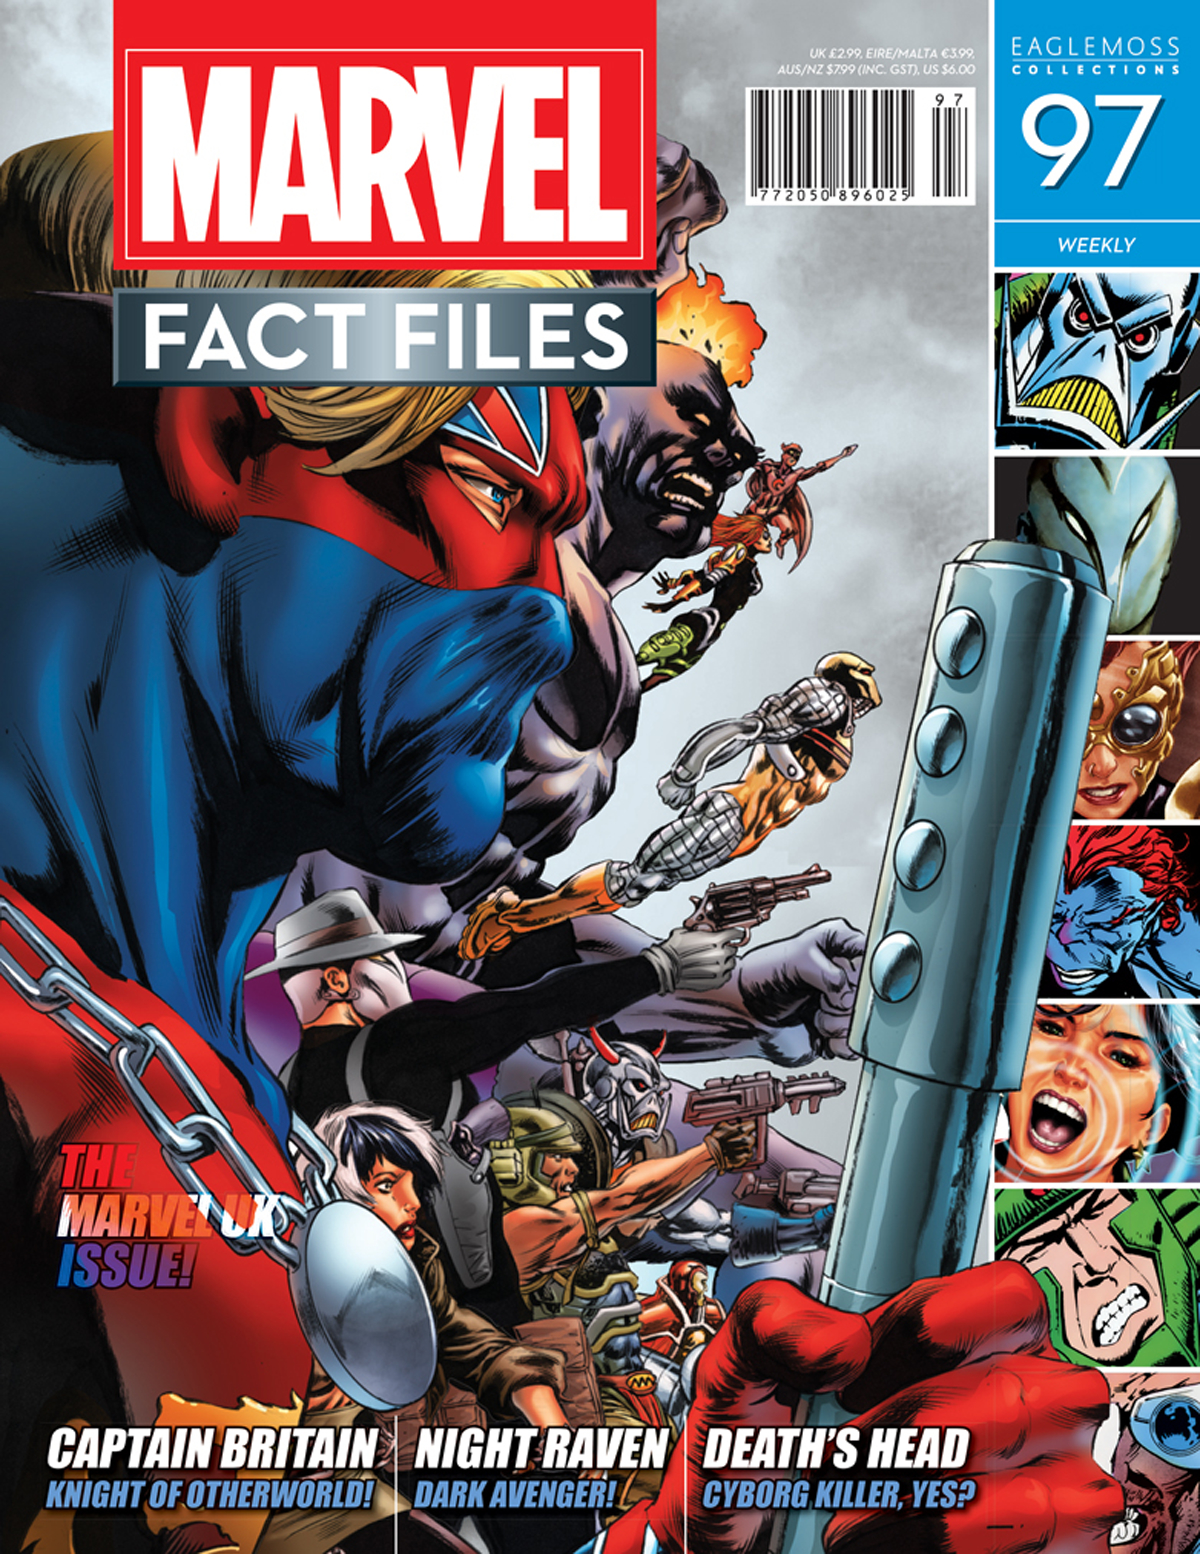 MARVEL FACT FILES #97 CAPTAIN BRITAIN COVER